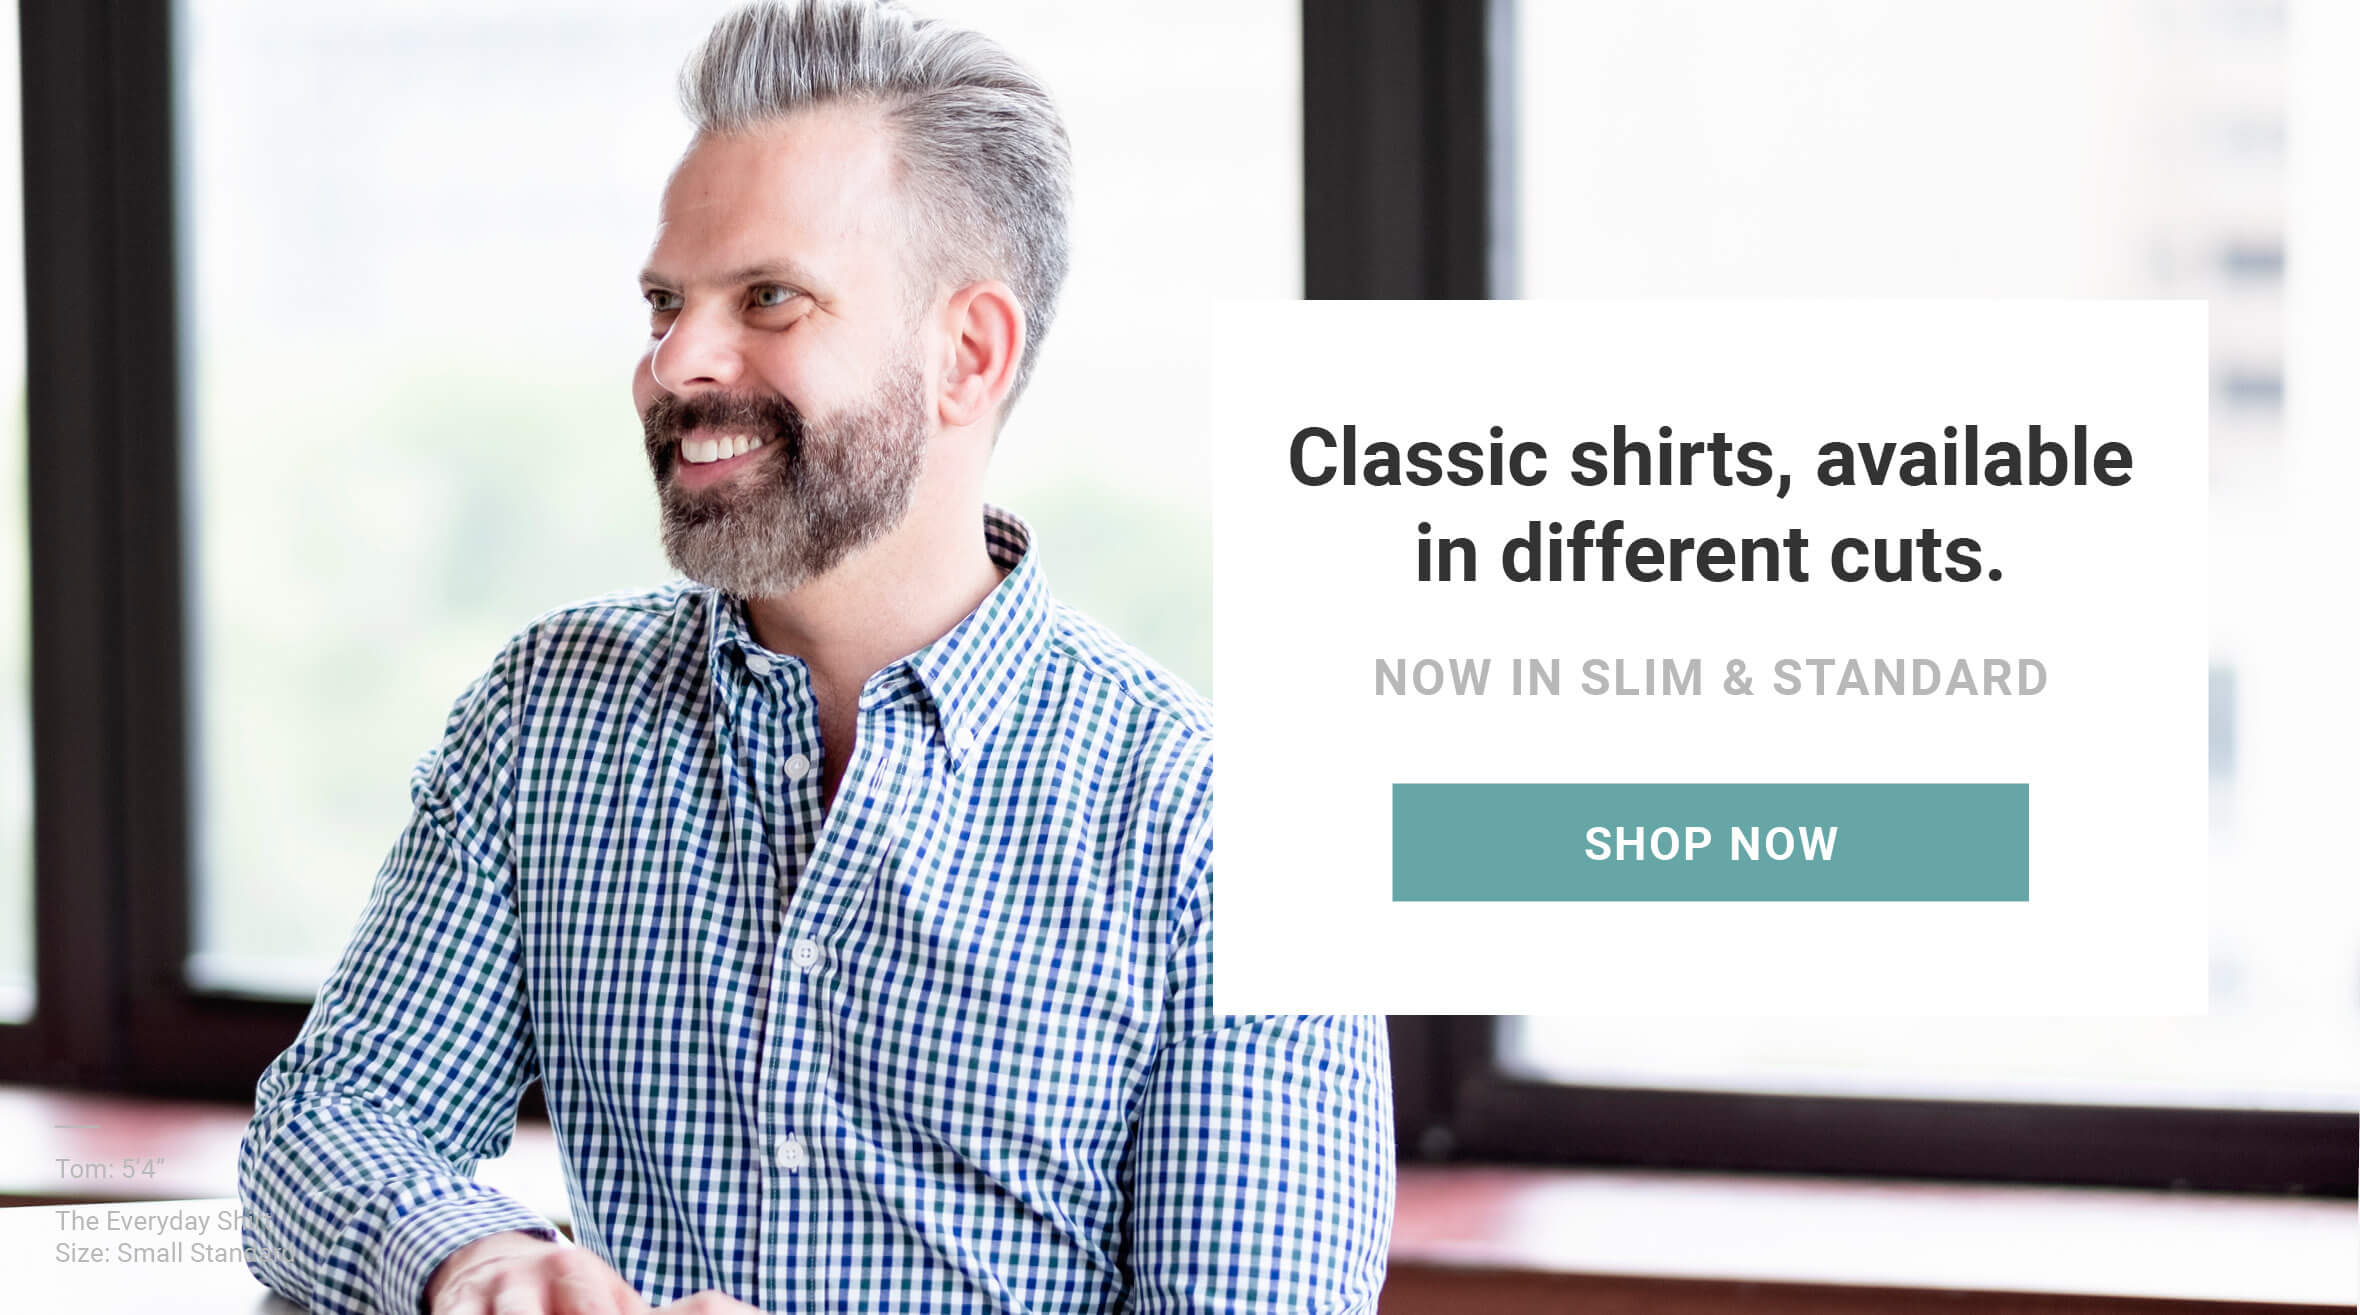 Classic shirts, available in different cuts. Now in slim and standard. Made for men of great heights, shorter guy clothes. Dress shirts now available in 14 sizes. Shop now. As seen on Shark Tank!